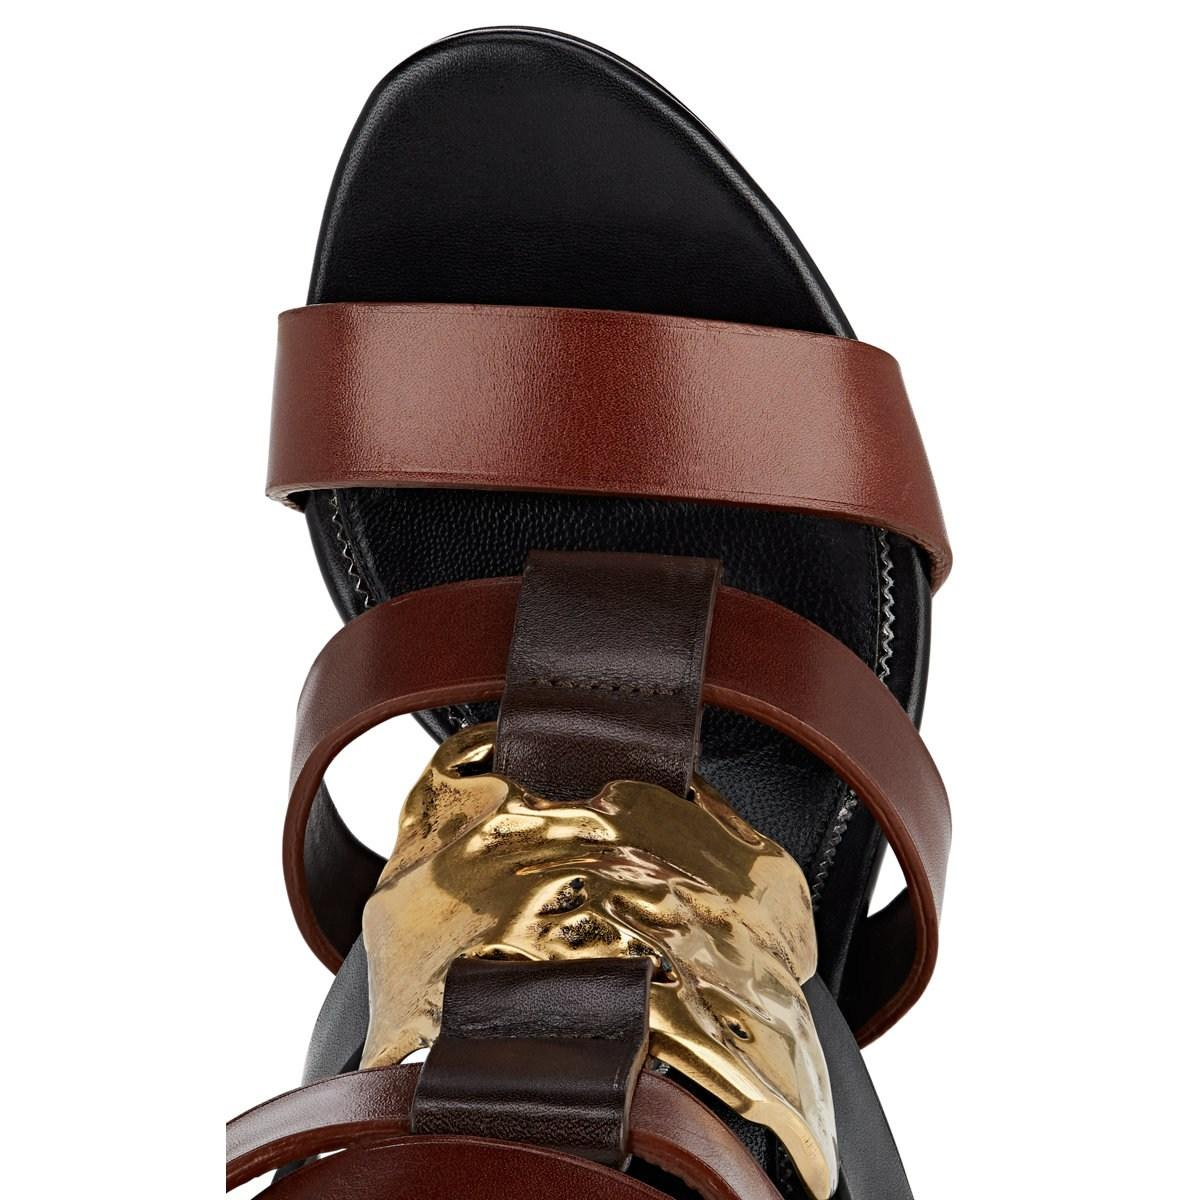 d5d9814631a Tom Ford - Brown Sculpted-heel Leather Sandals - Lyst. View fullscreen